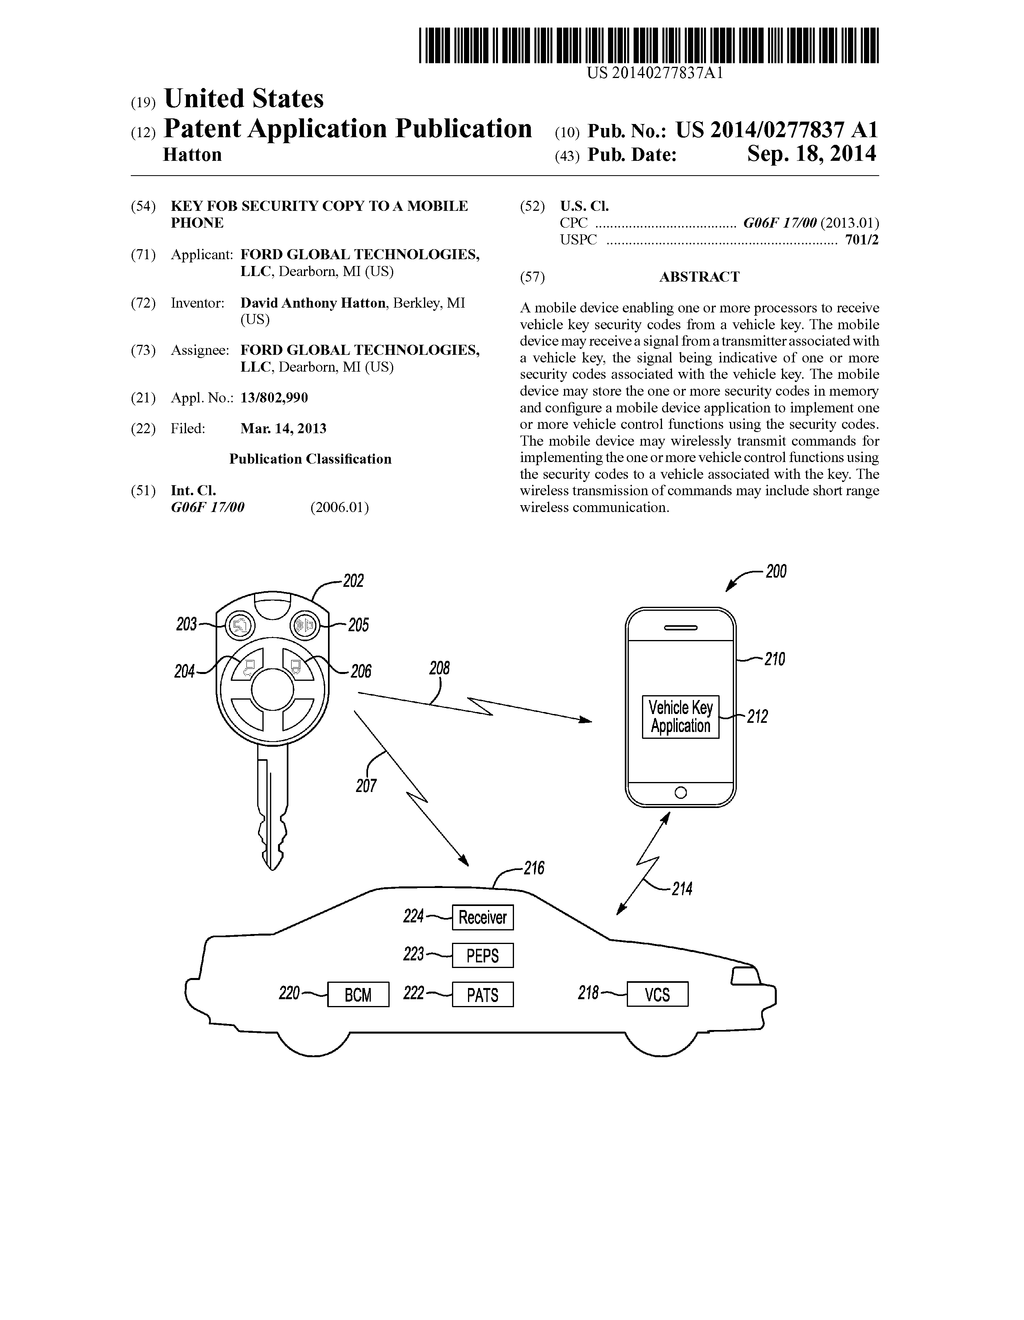 KEY FOB SECURITY COPY TO A MOBILE PHONE - diagram, schematic ... Key Fob Schematic on computer schematic, water pump schematic, battery schematic, flashlight schematic, door schematic, engine schematic, car schematic, remote start schematic, radio schematic, cell phone schematic,